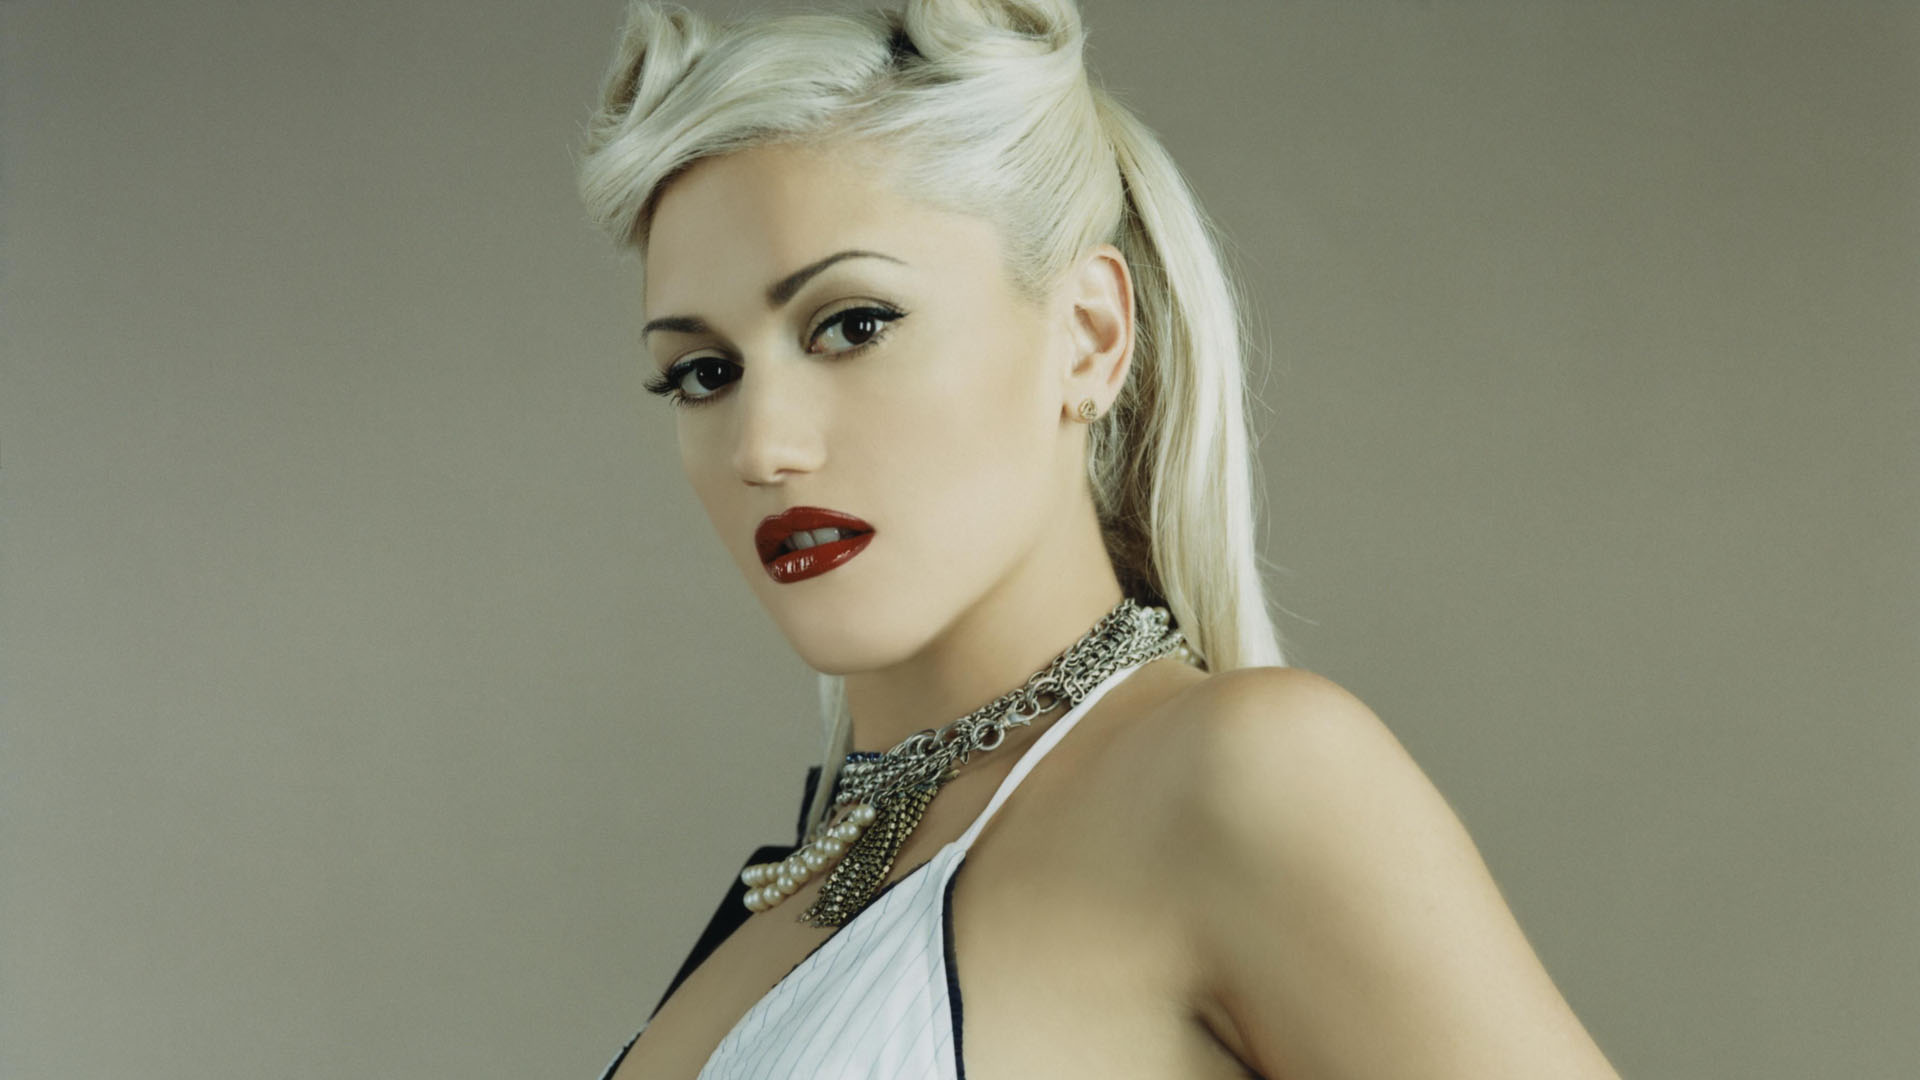 gwen stefani wallpaper cool - photo #25